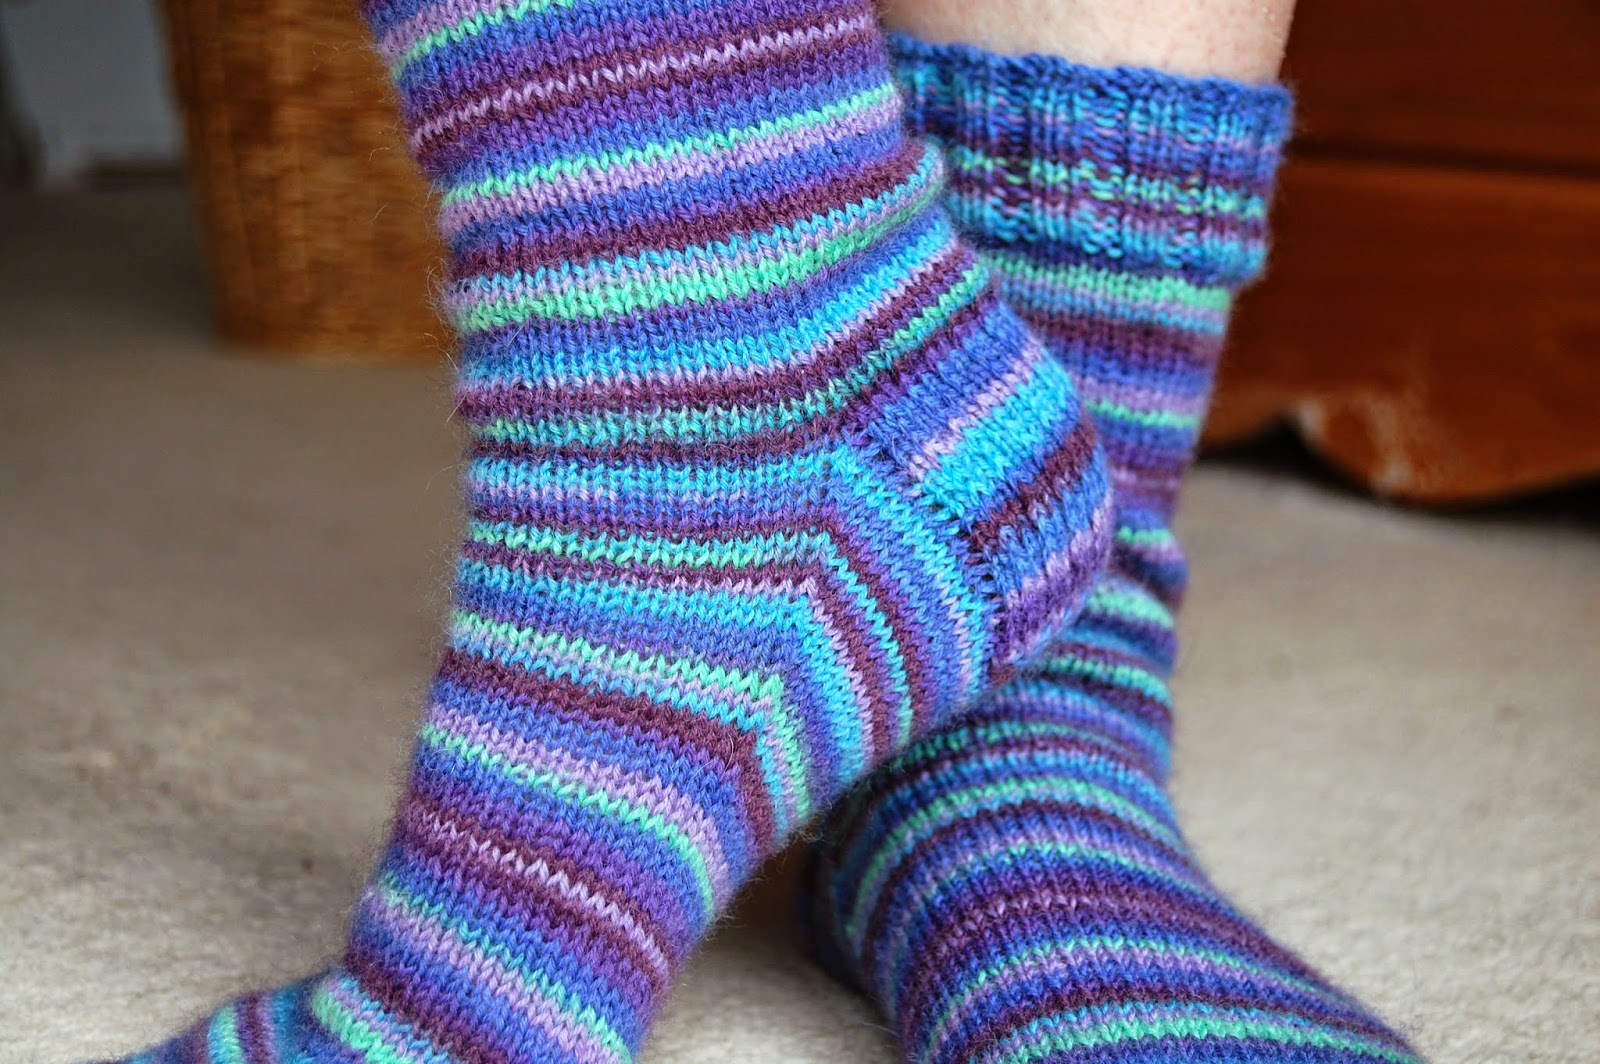 Knitting socks on five knitting needles: a photo of a master class with diagrams